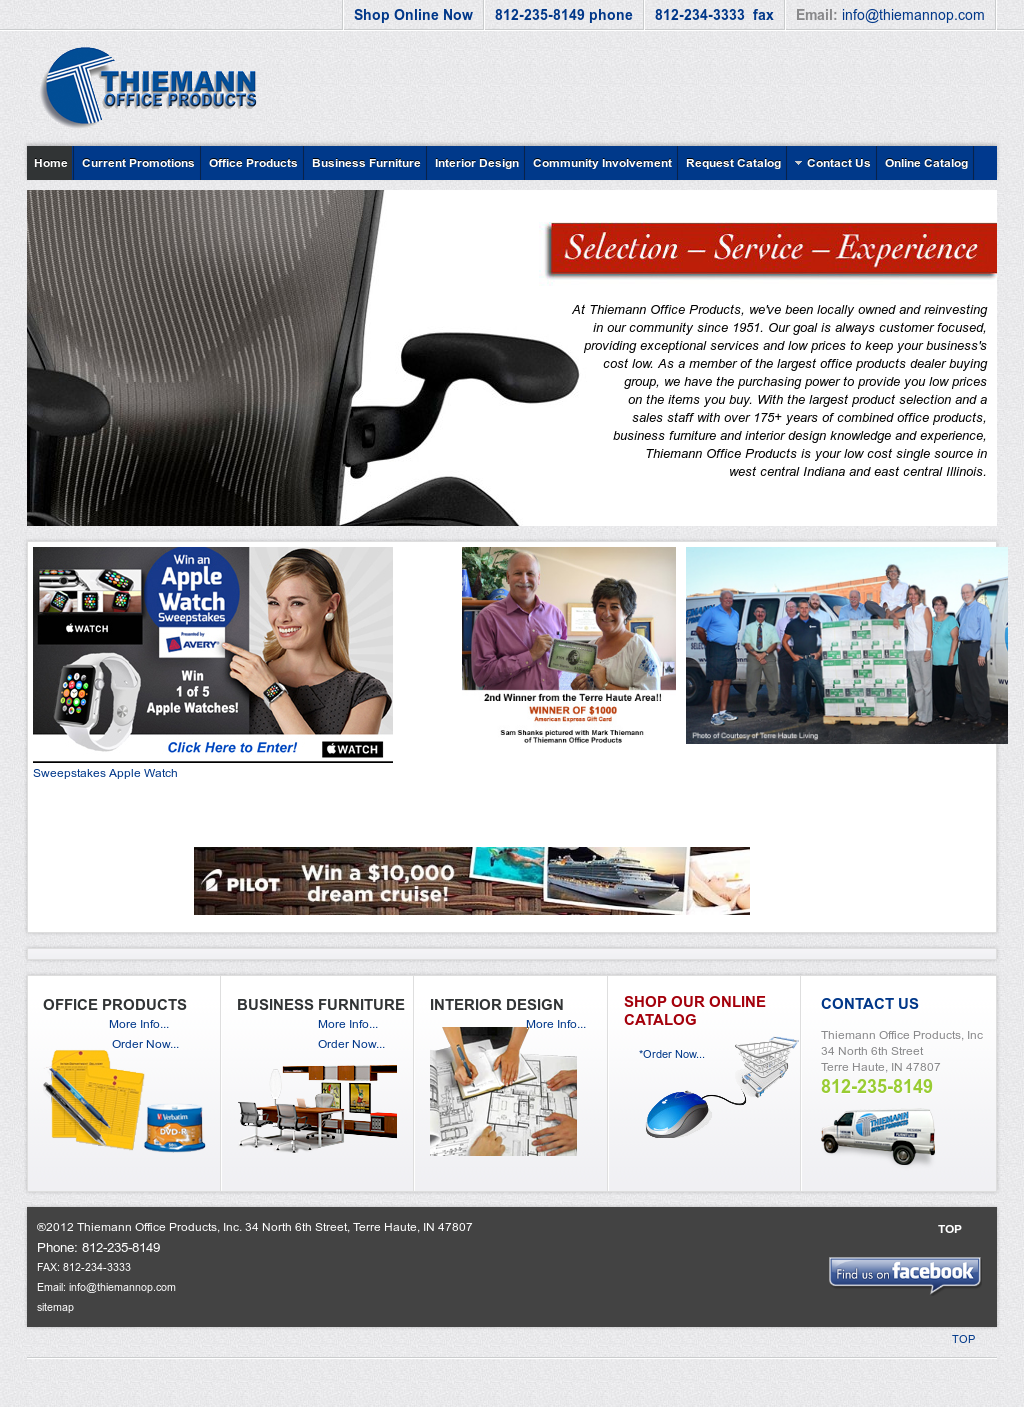 Superieur Thiemann Office Products Competitors, Revenue And Employees   Owler Company  Profile